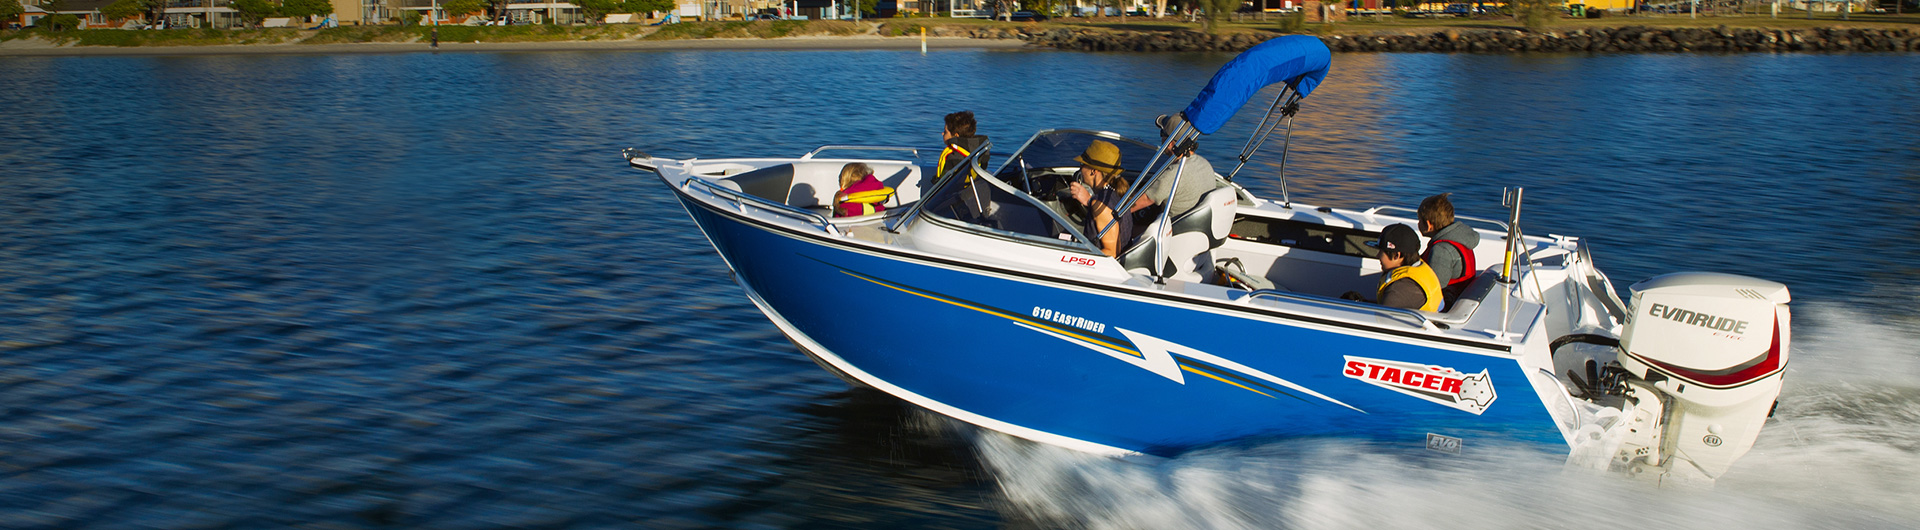 Evinrude Performance